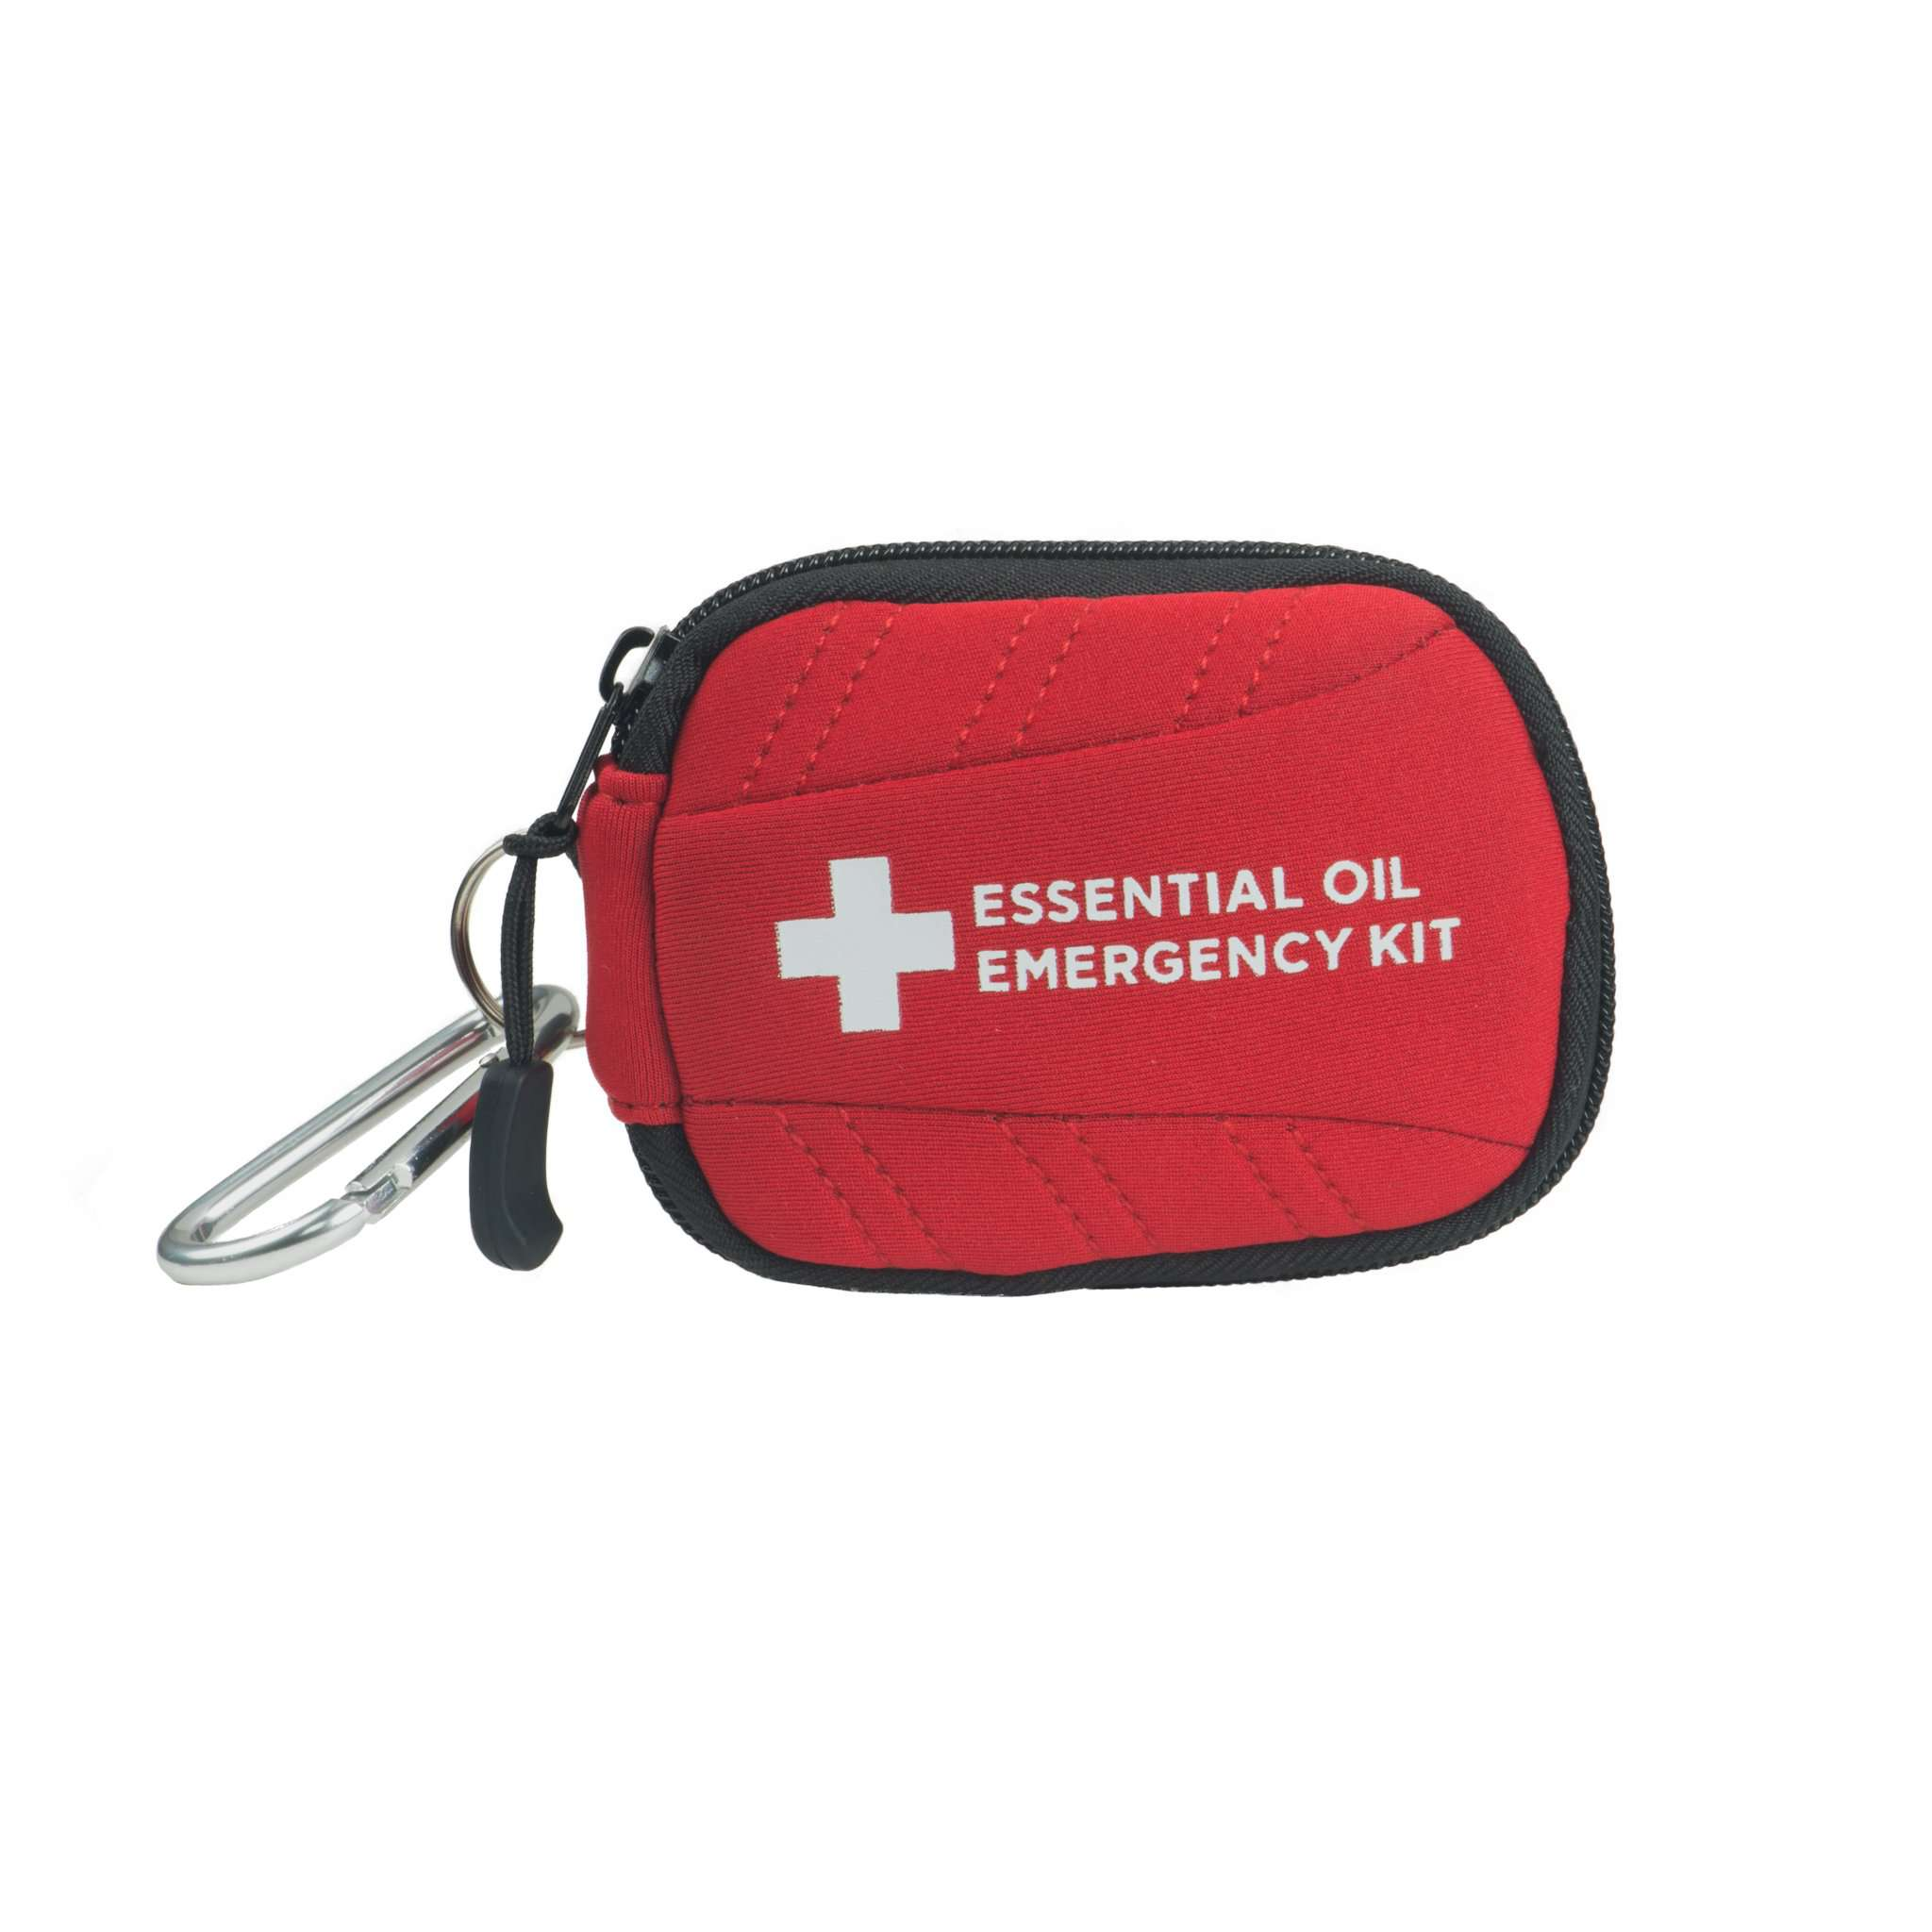 Essential Oil Emergency Kit Travel Case - Your Oil Tools